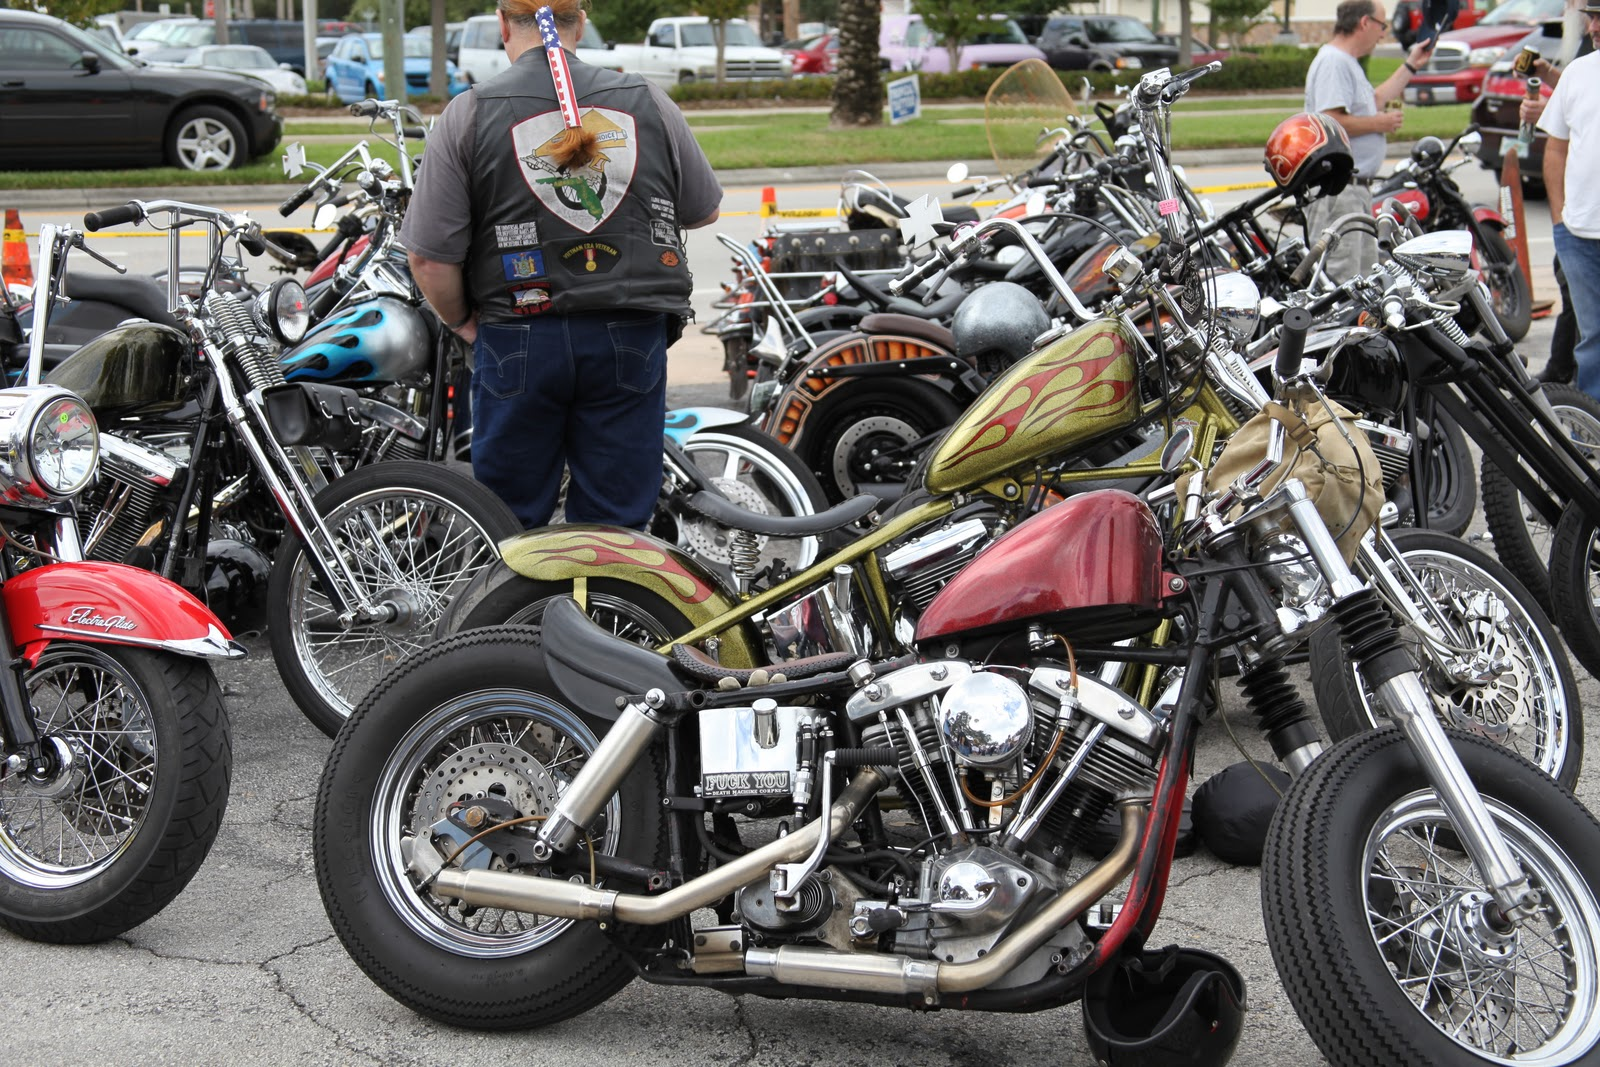 Harley Davidson Topper Scooter Parts For Sale Autos Post